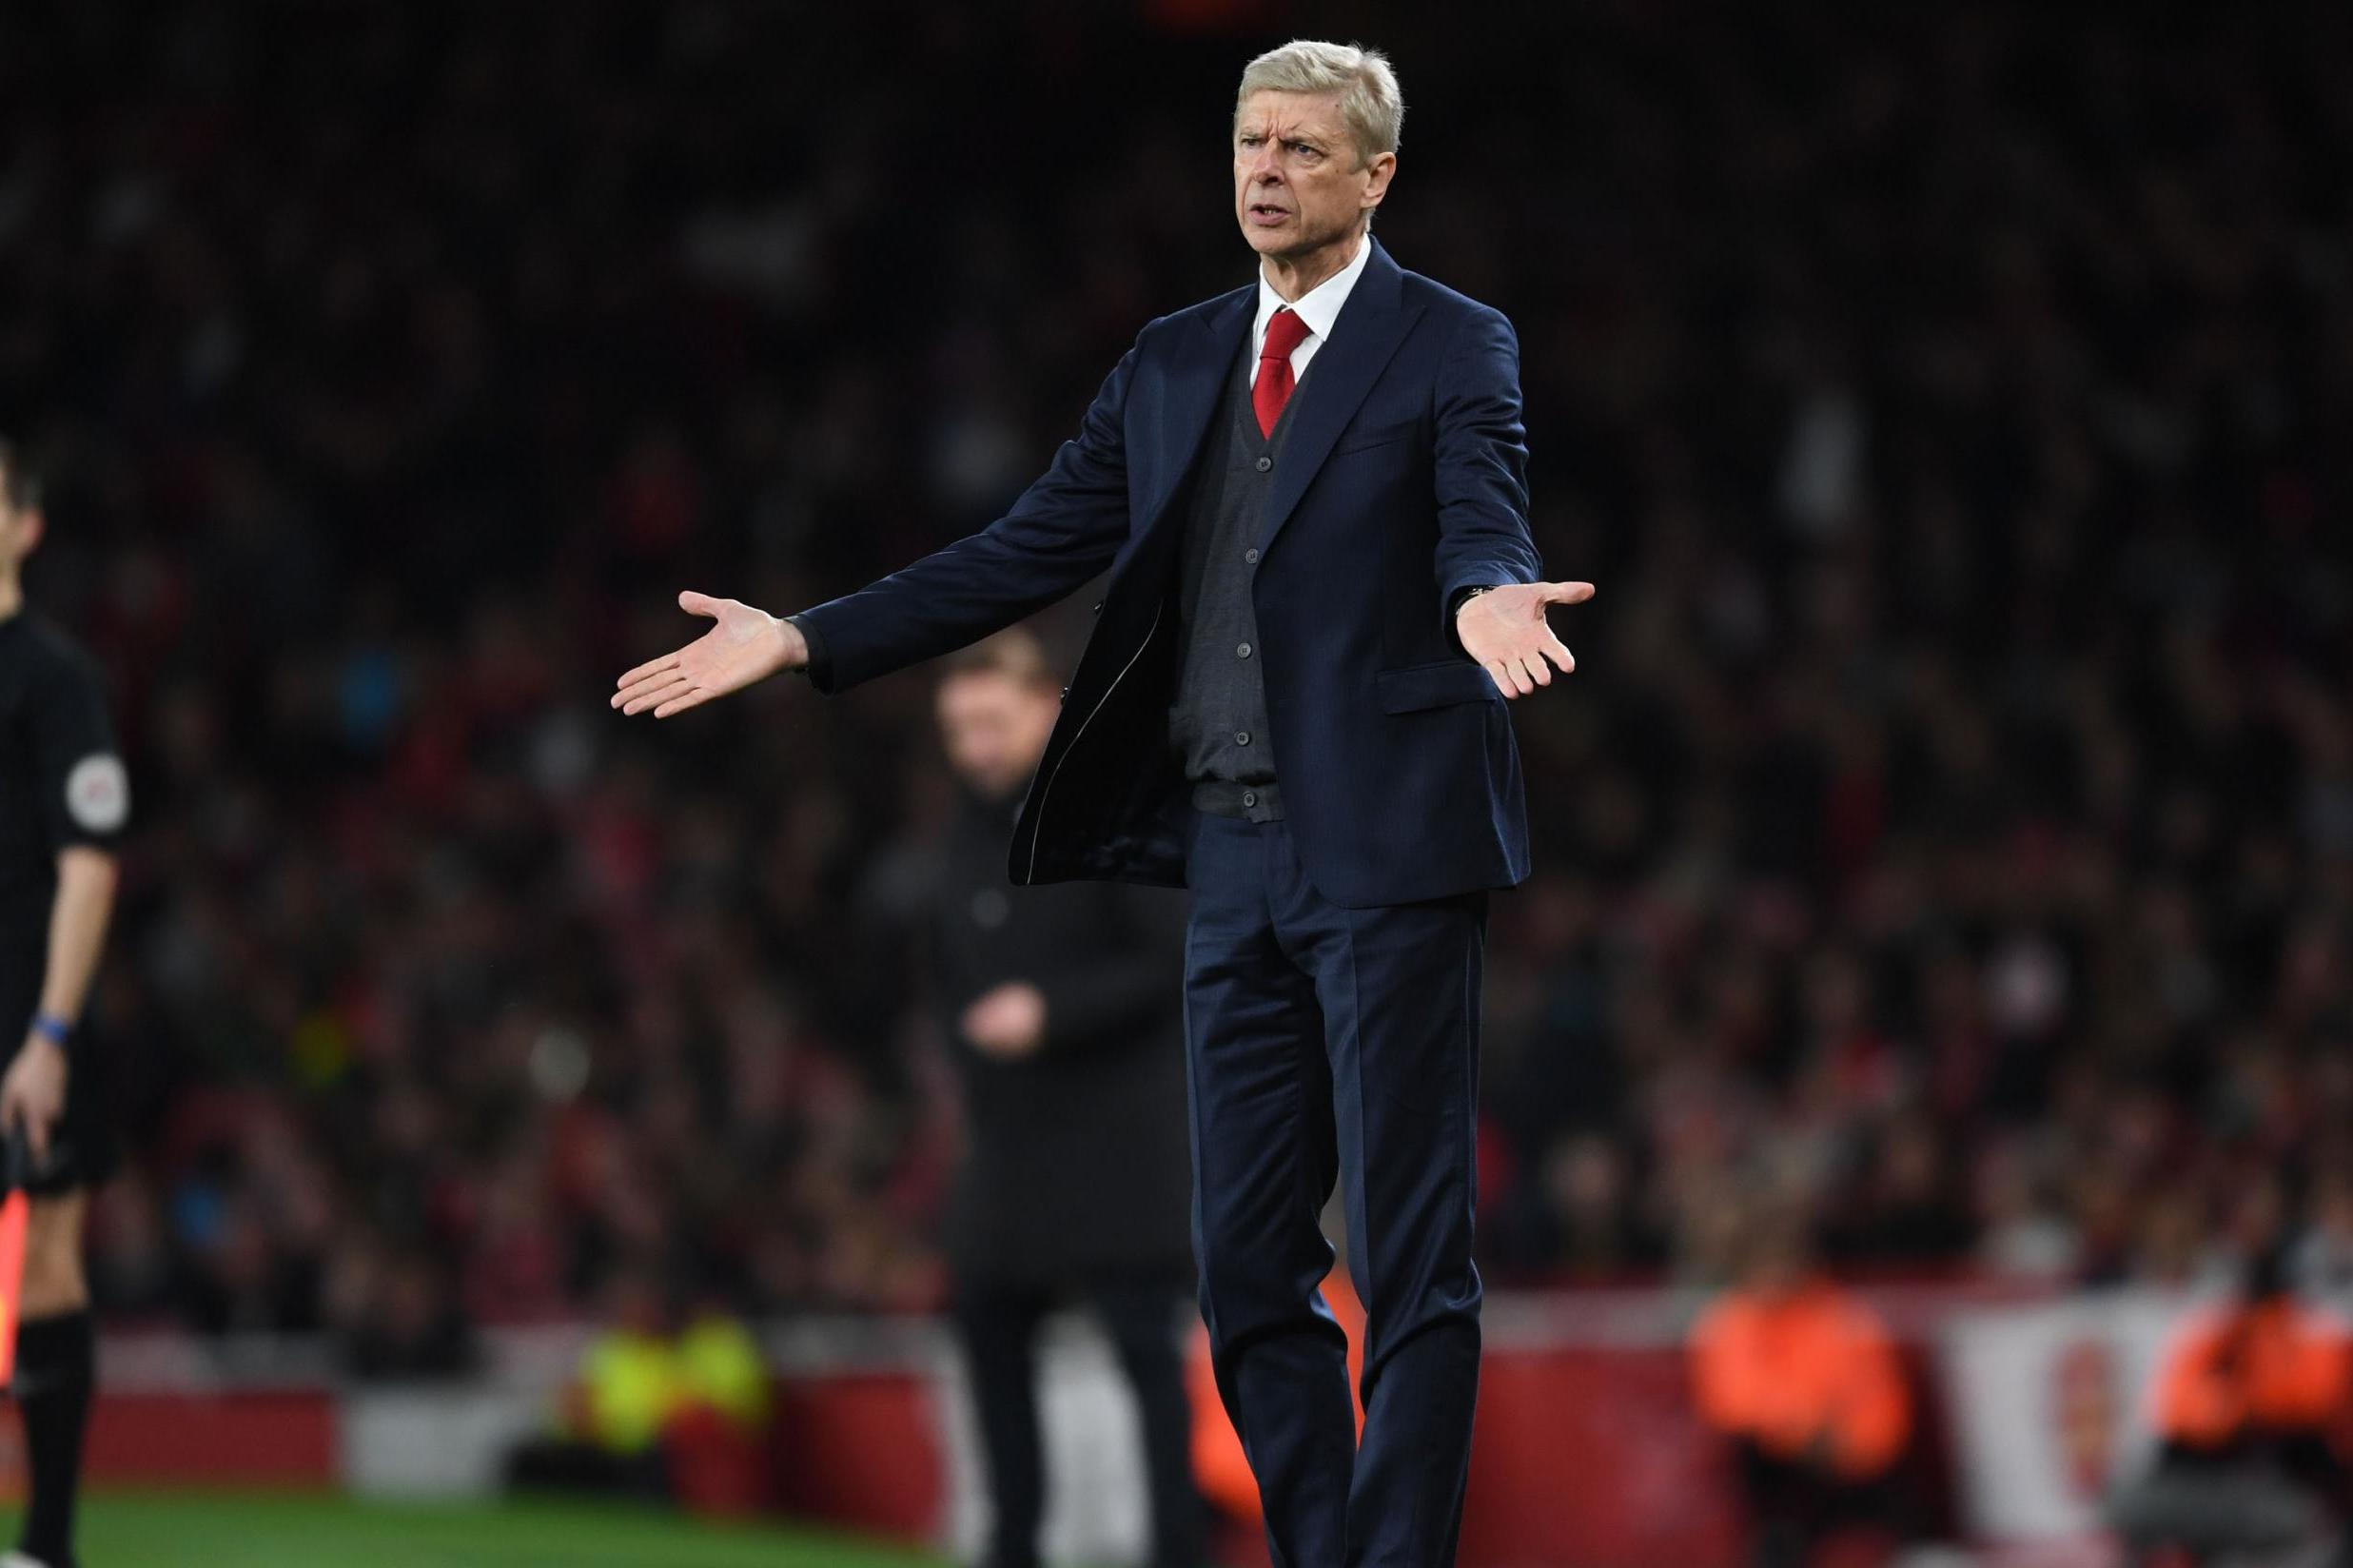 Arsenal manager Arsene Wenger blamed for Paddy Power Betfair's dip in profits